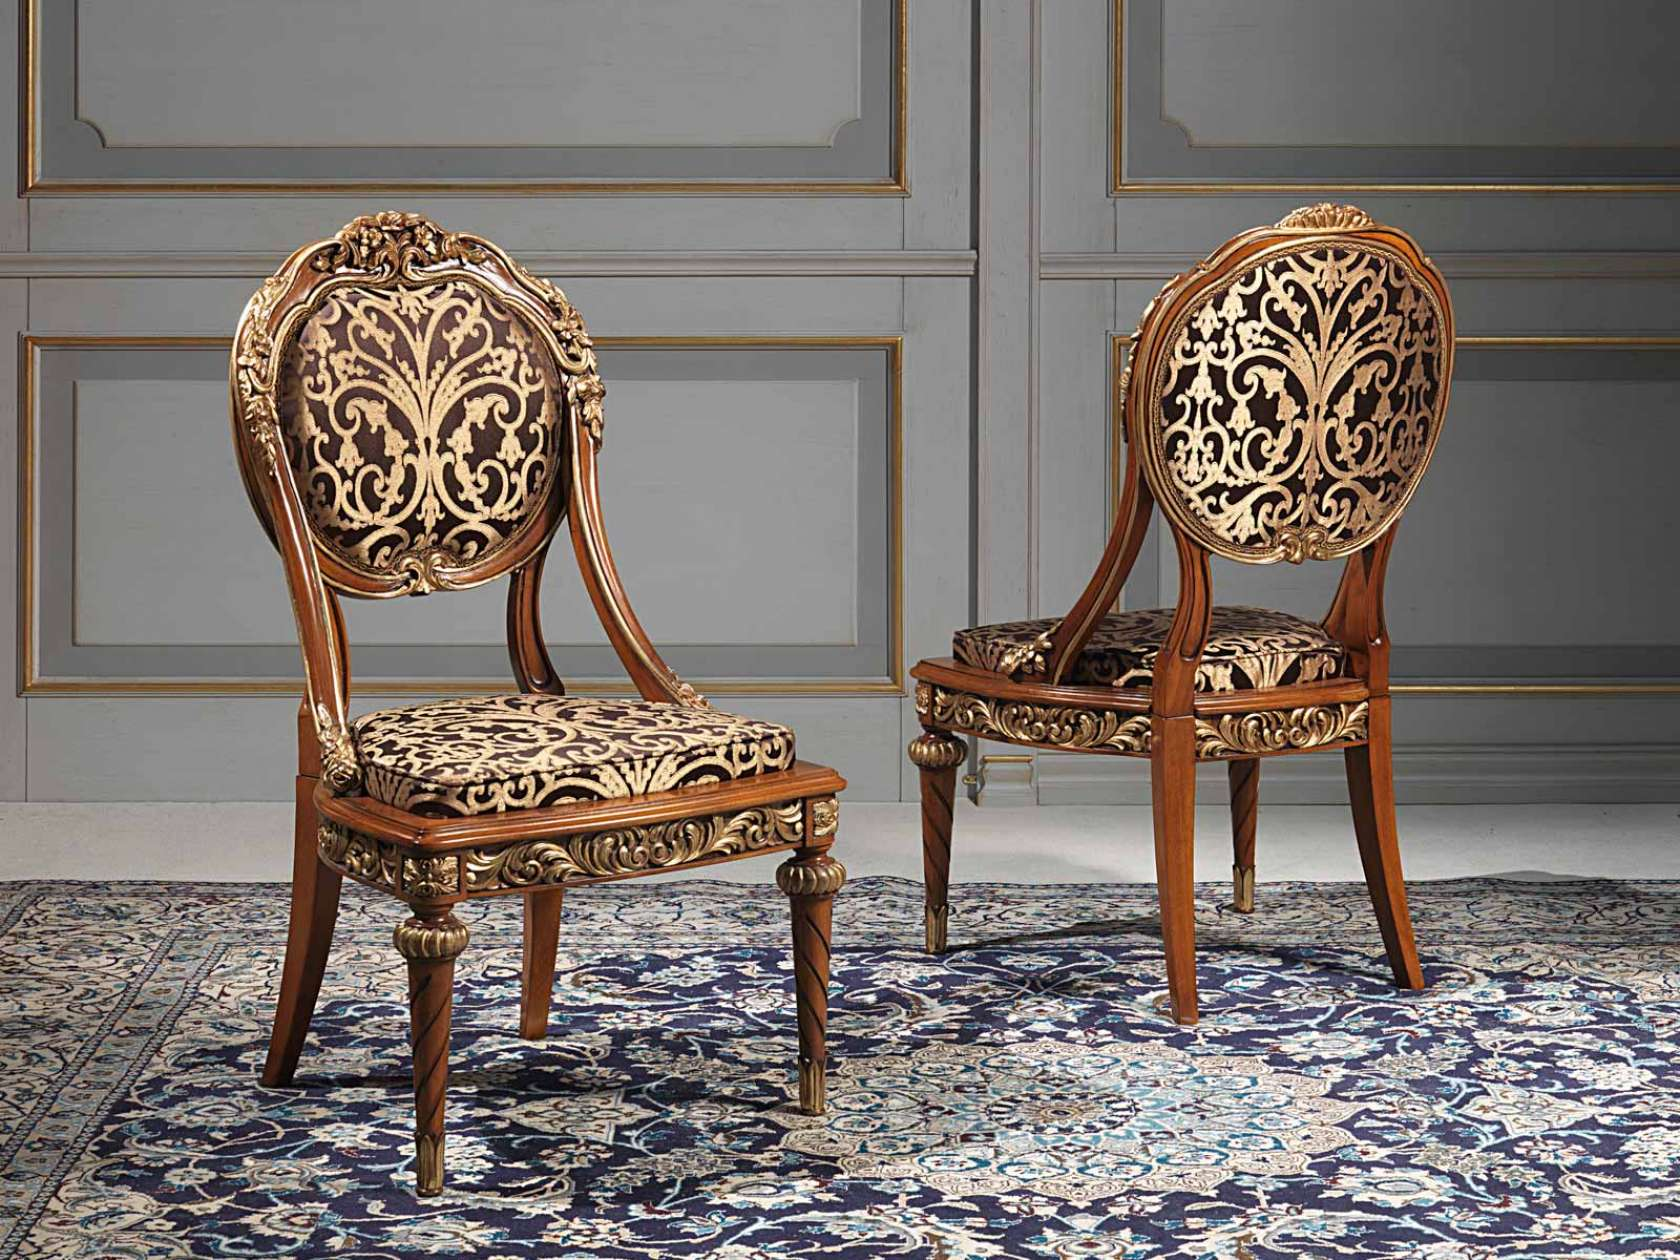 Versailles Chairs In Louis XVI Style